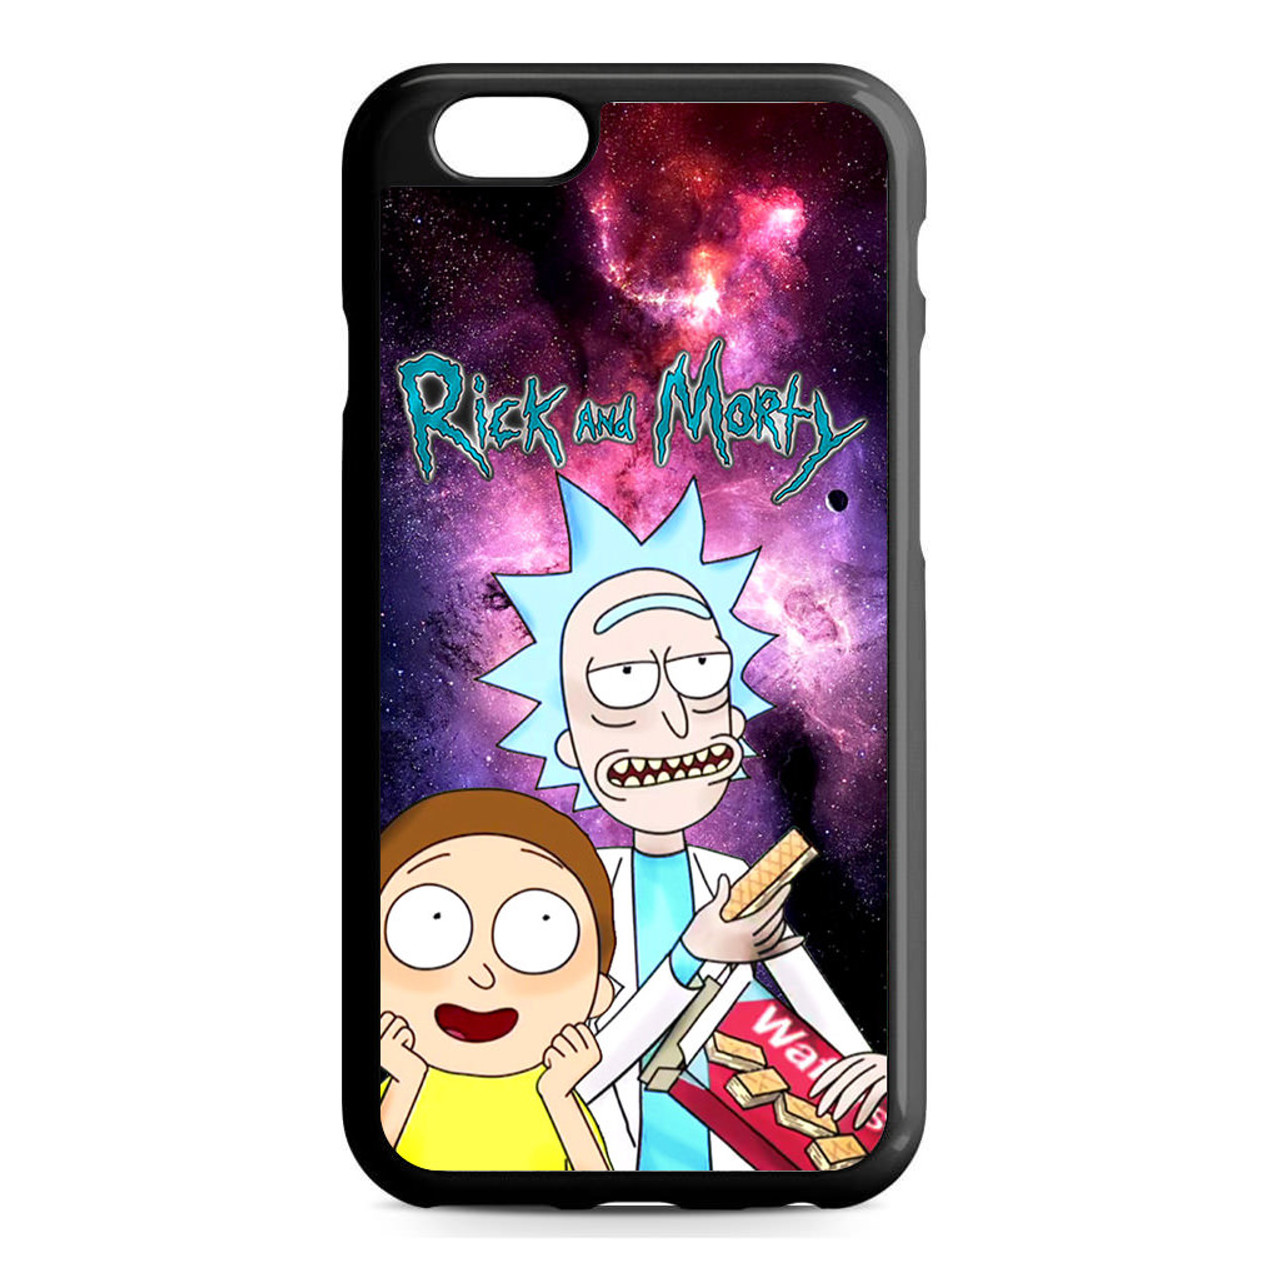 space iphone 6 case